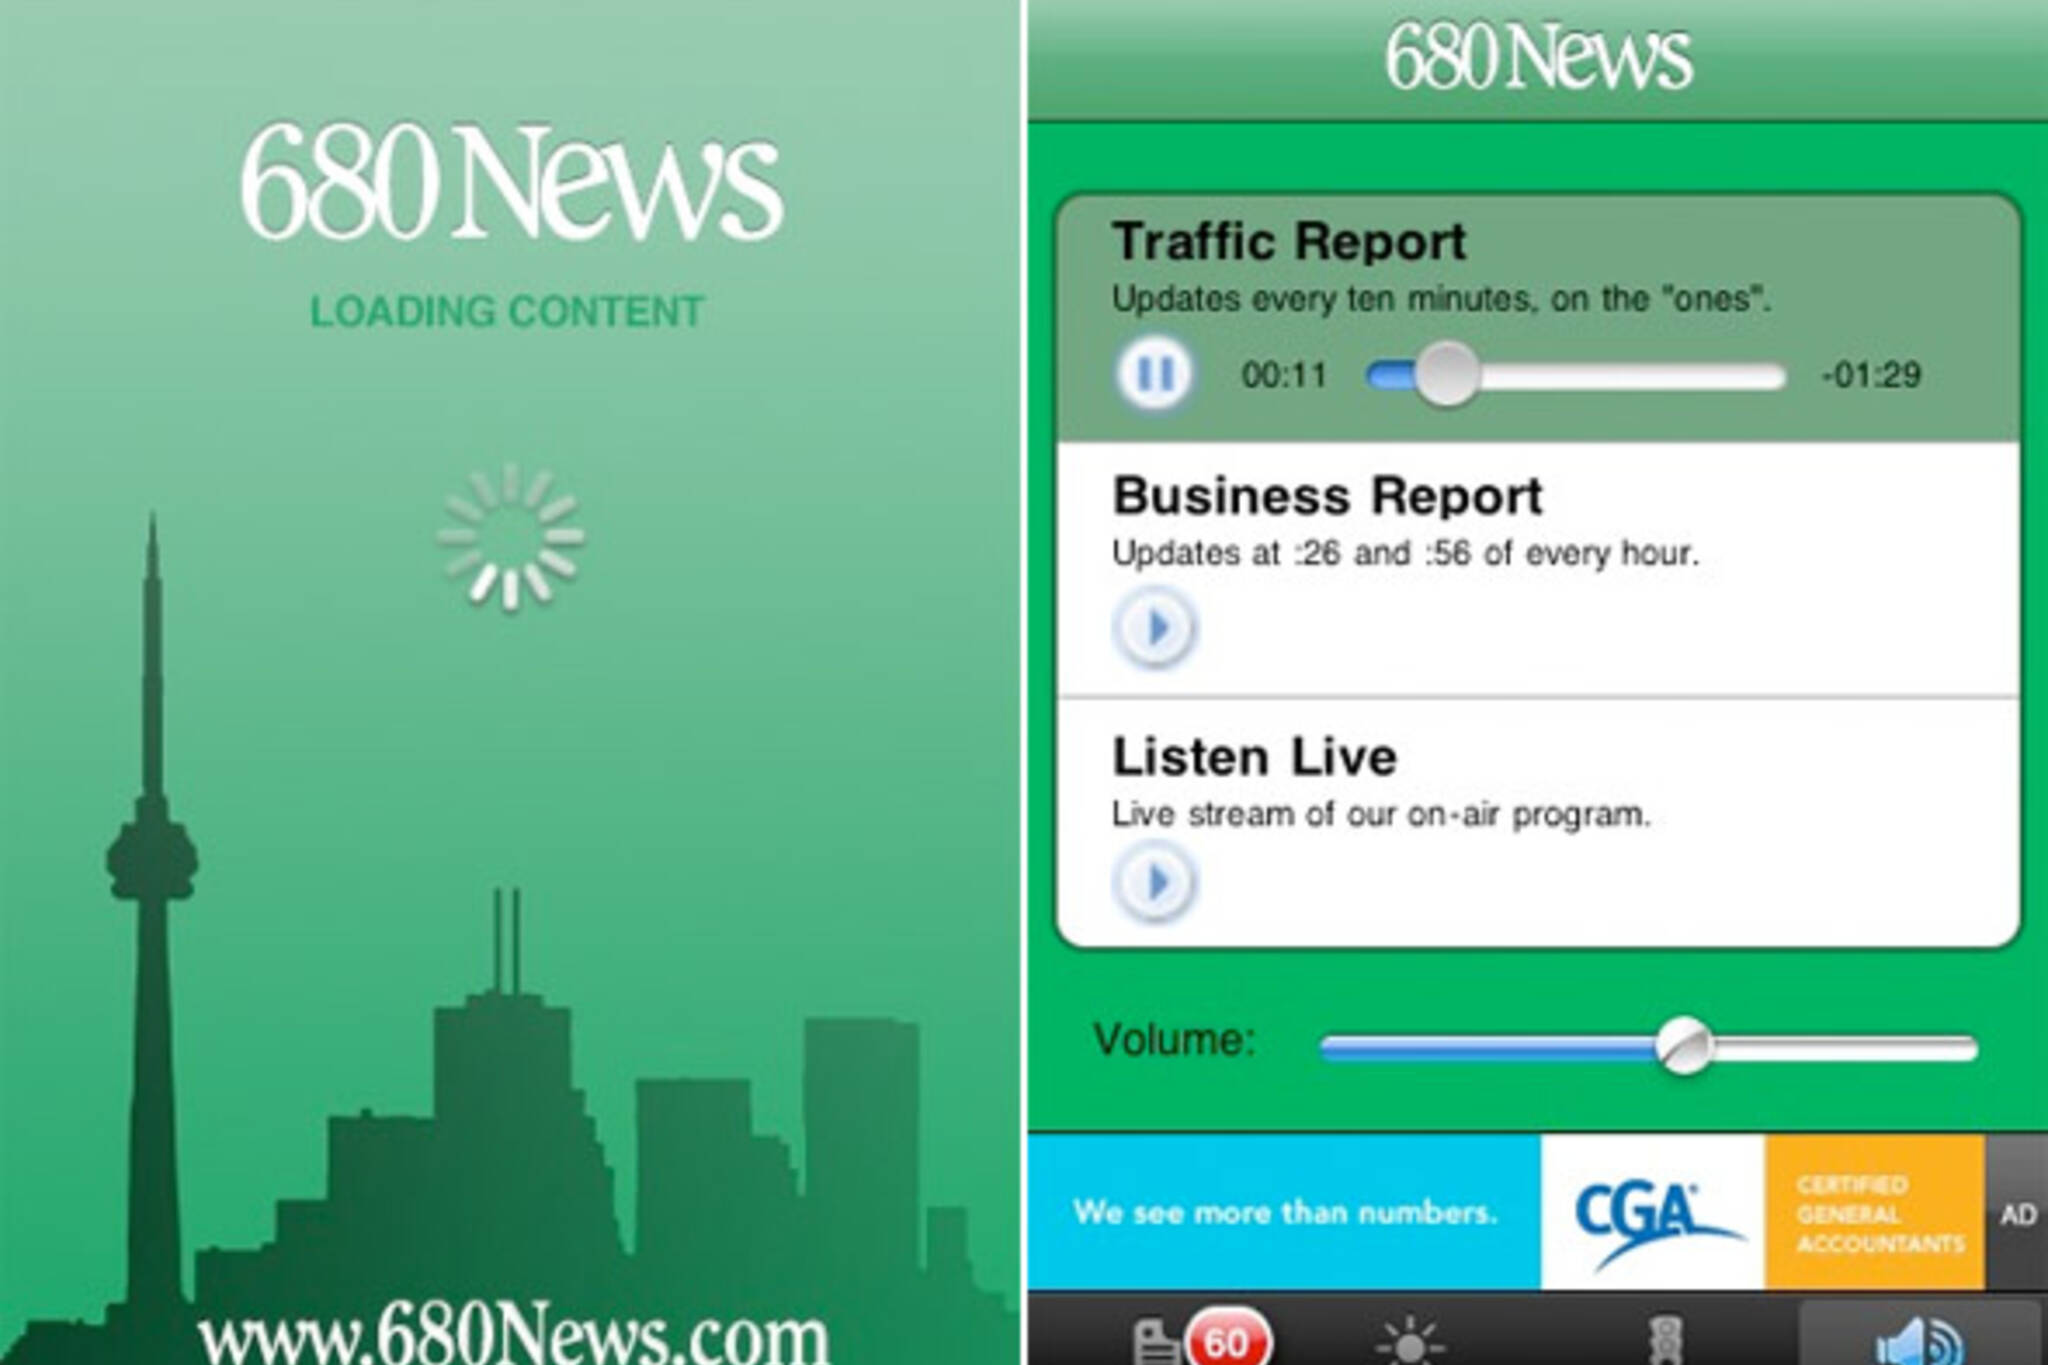 680news iphone app